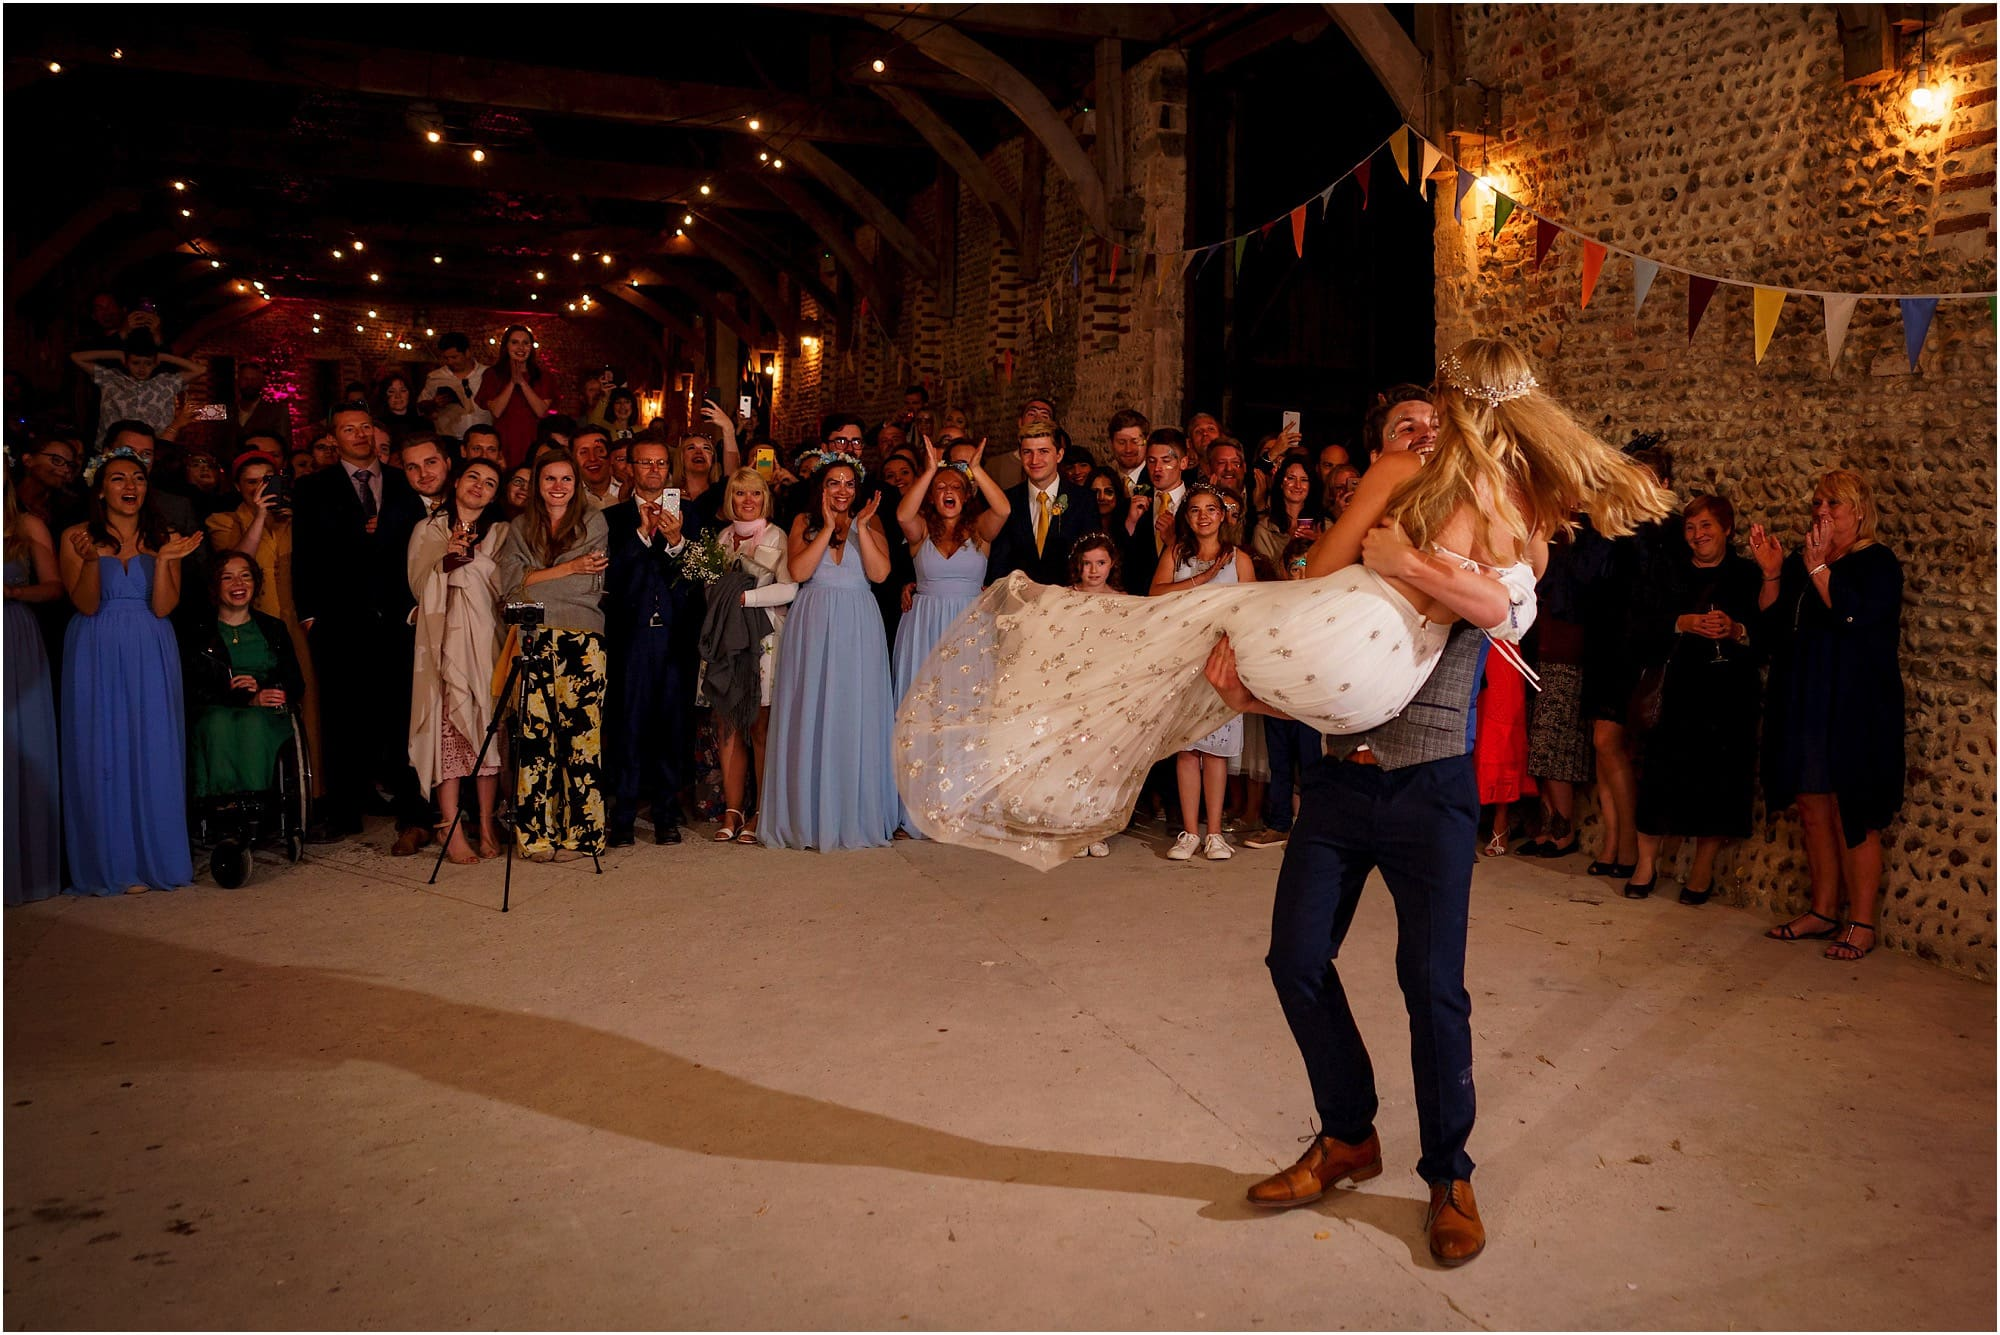 lifting up the bride during the first dance